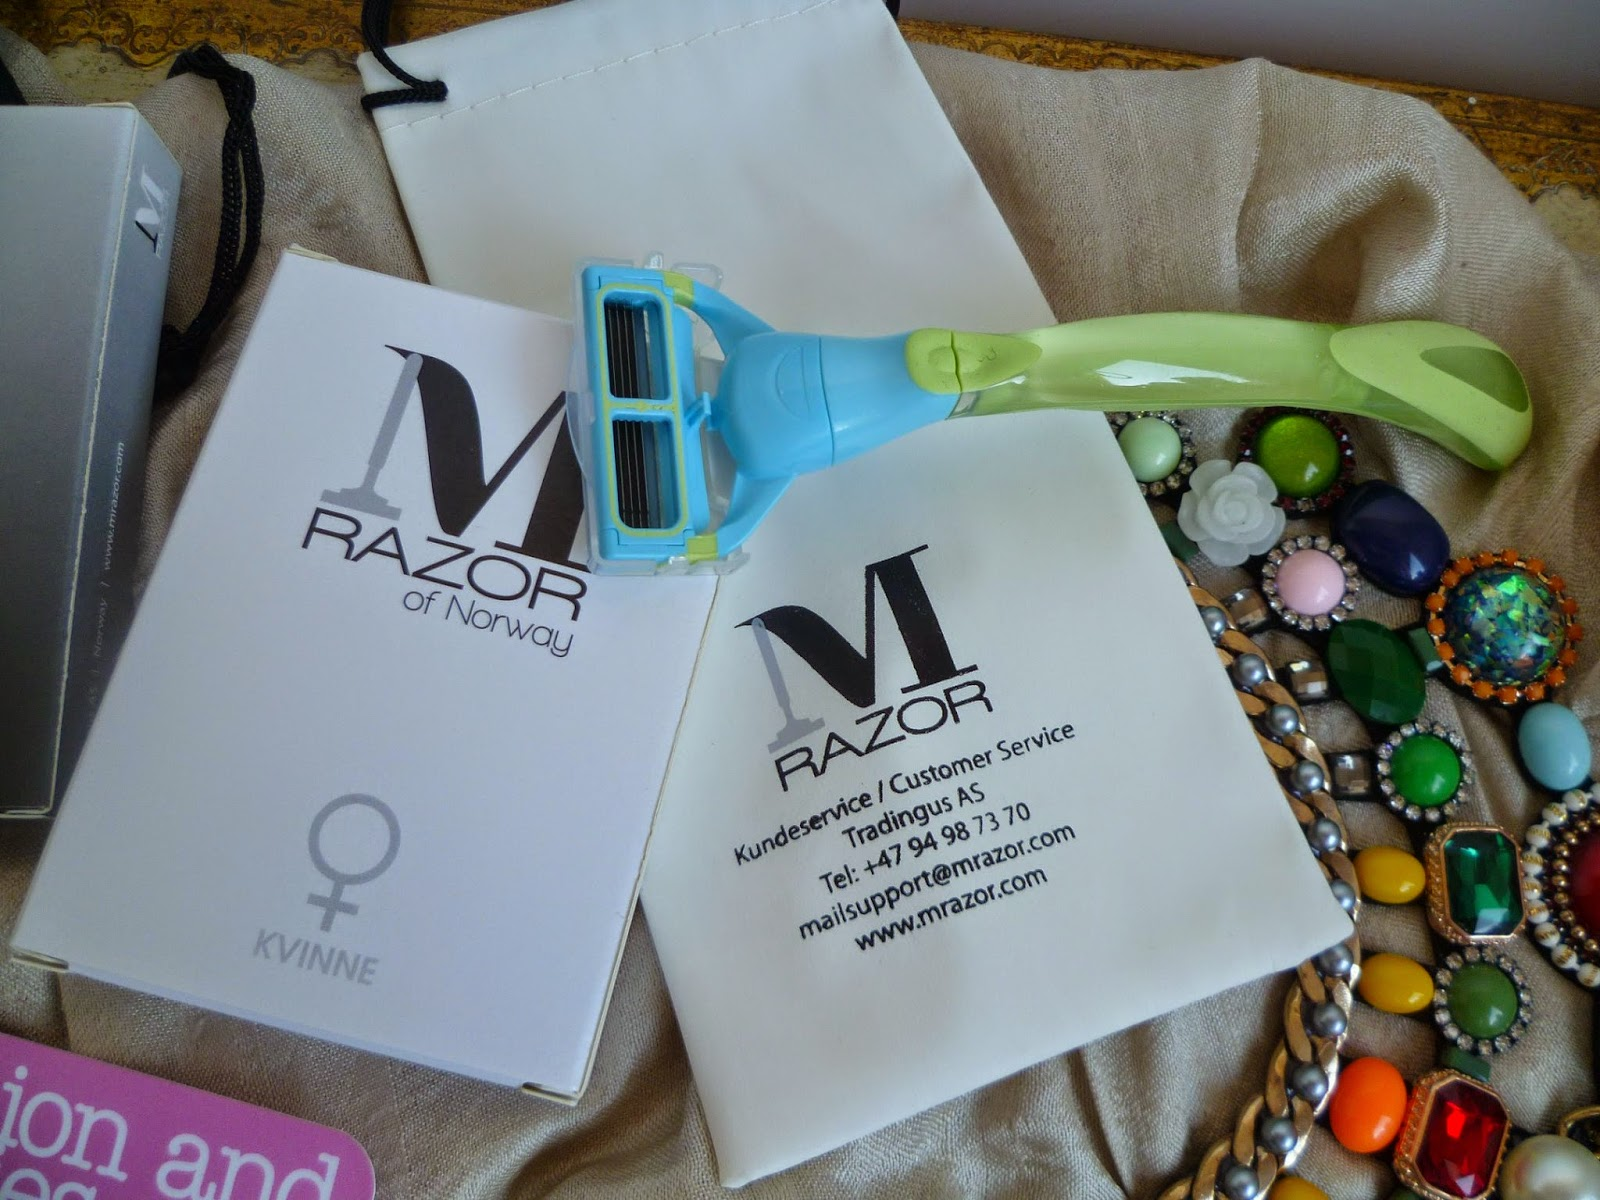 Mrazor of Norway review, rasoi economici, Fashion and Cookies, fashion blogger